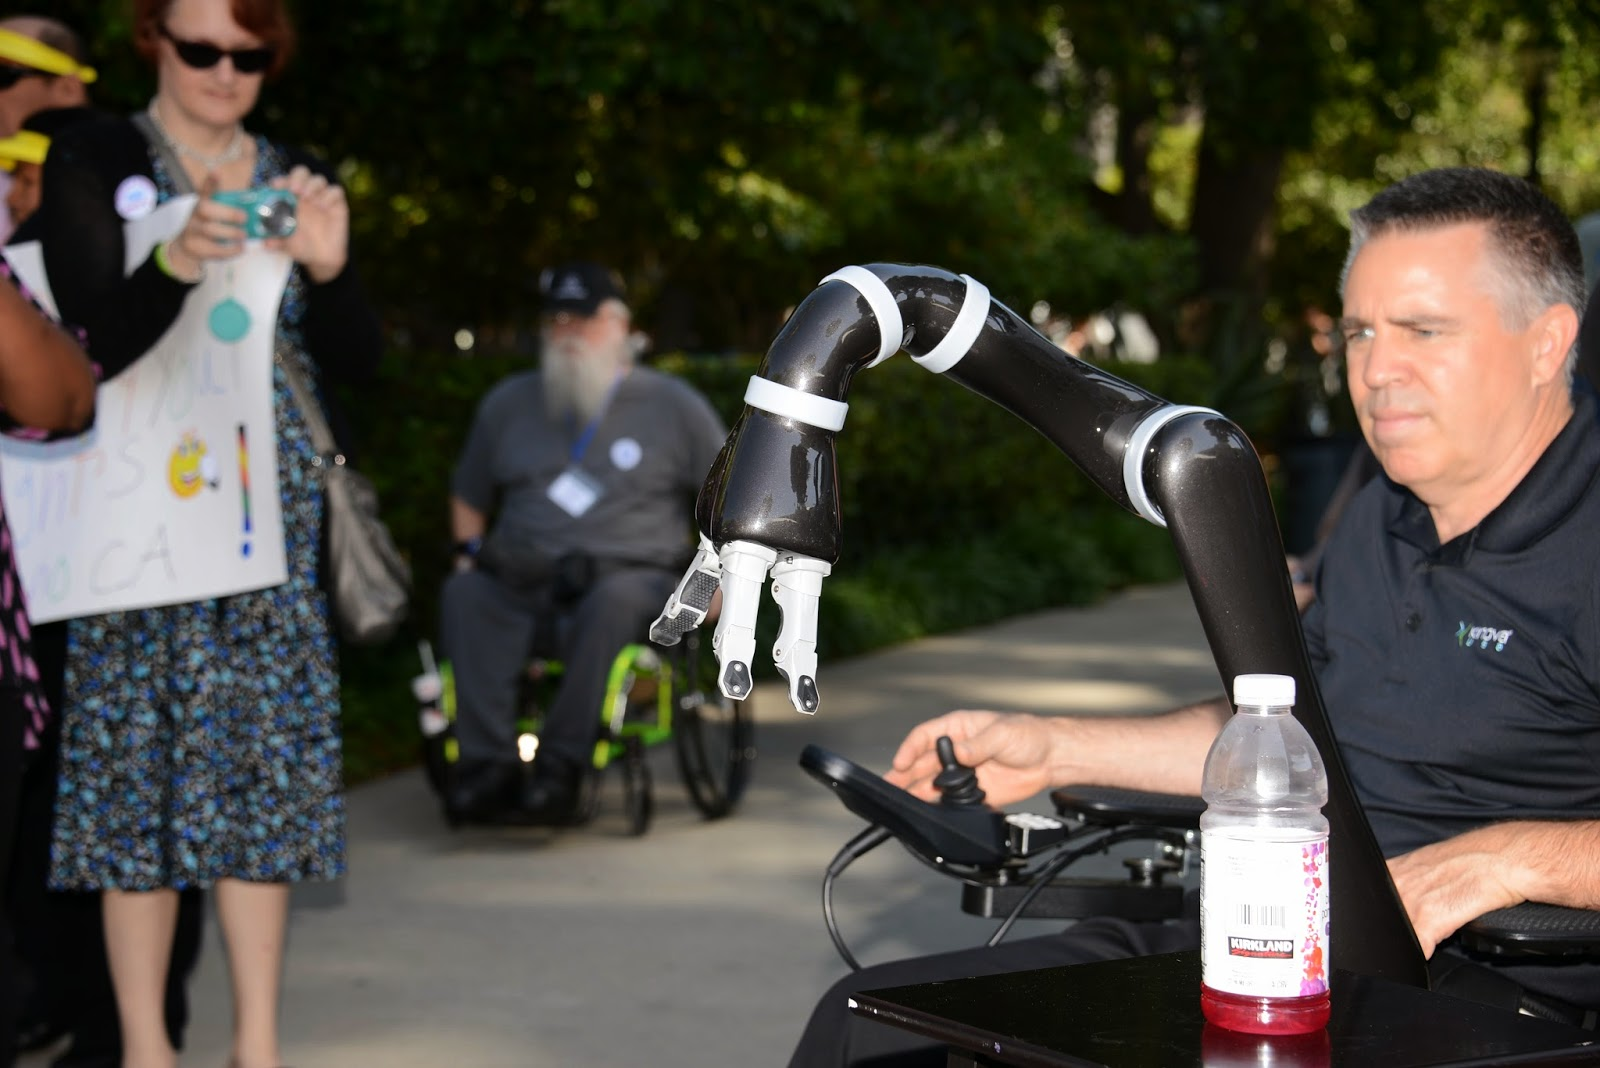 a man using a power wheelchair uses the JACO robotic arm device to reach for a bottled beverage.